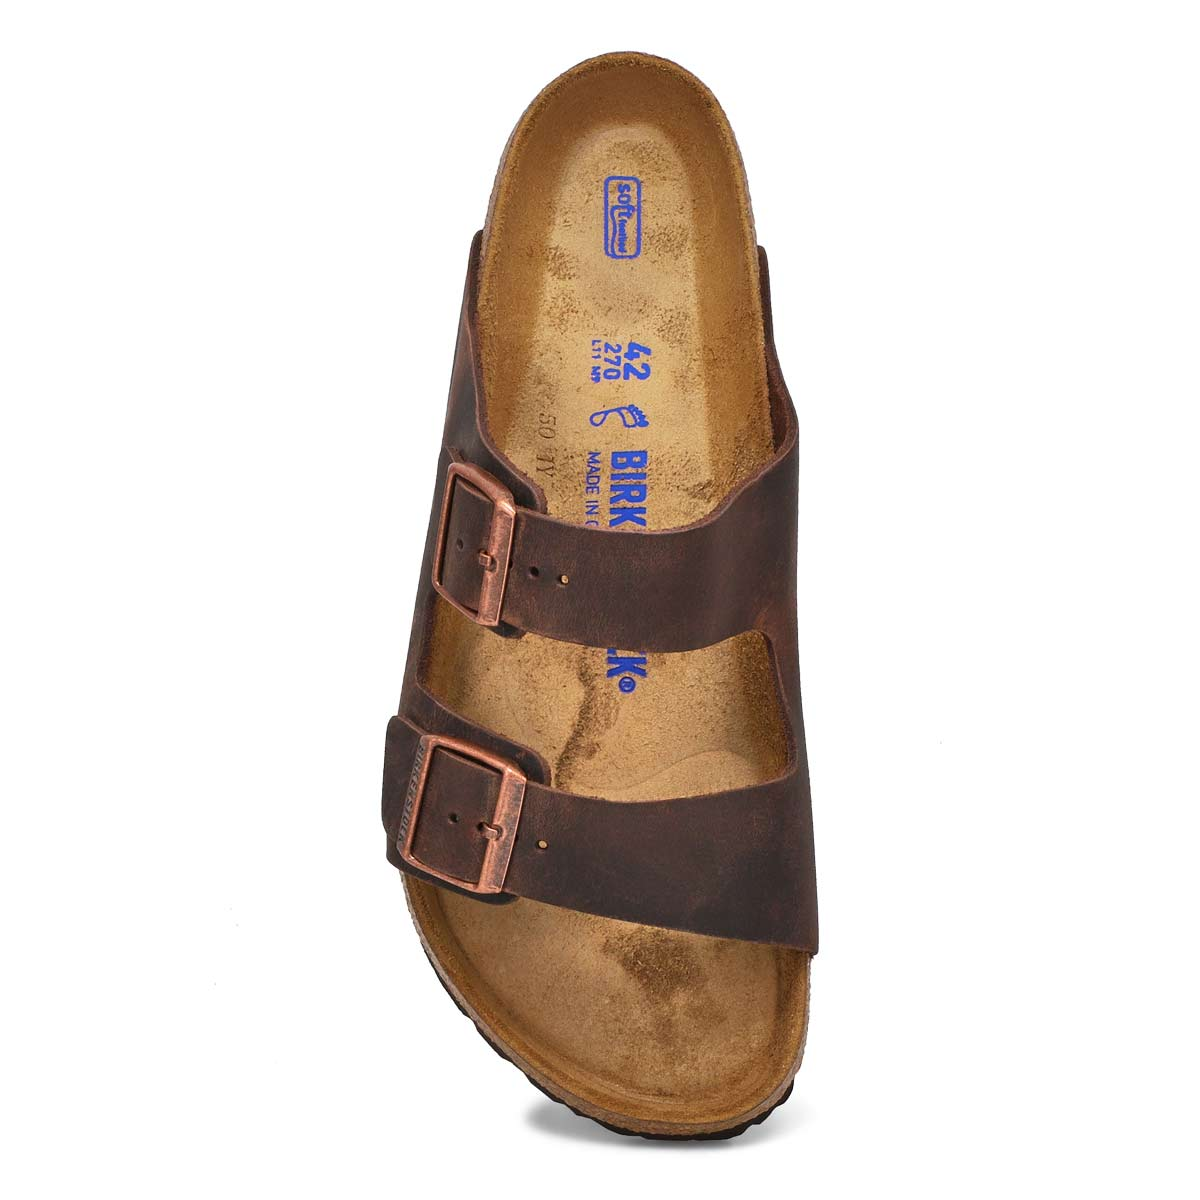 Men's Arizona SF Sandal - Habana